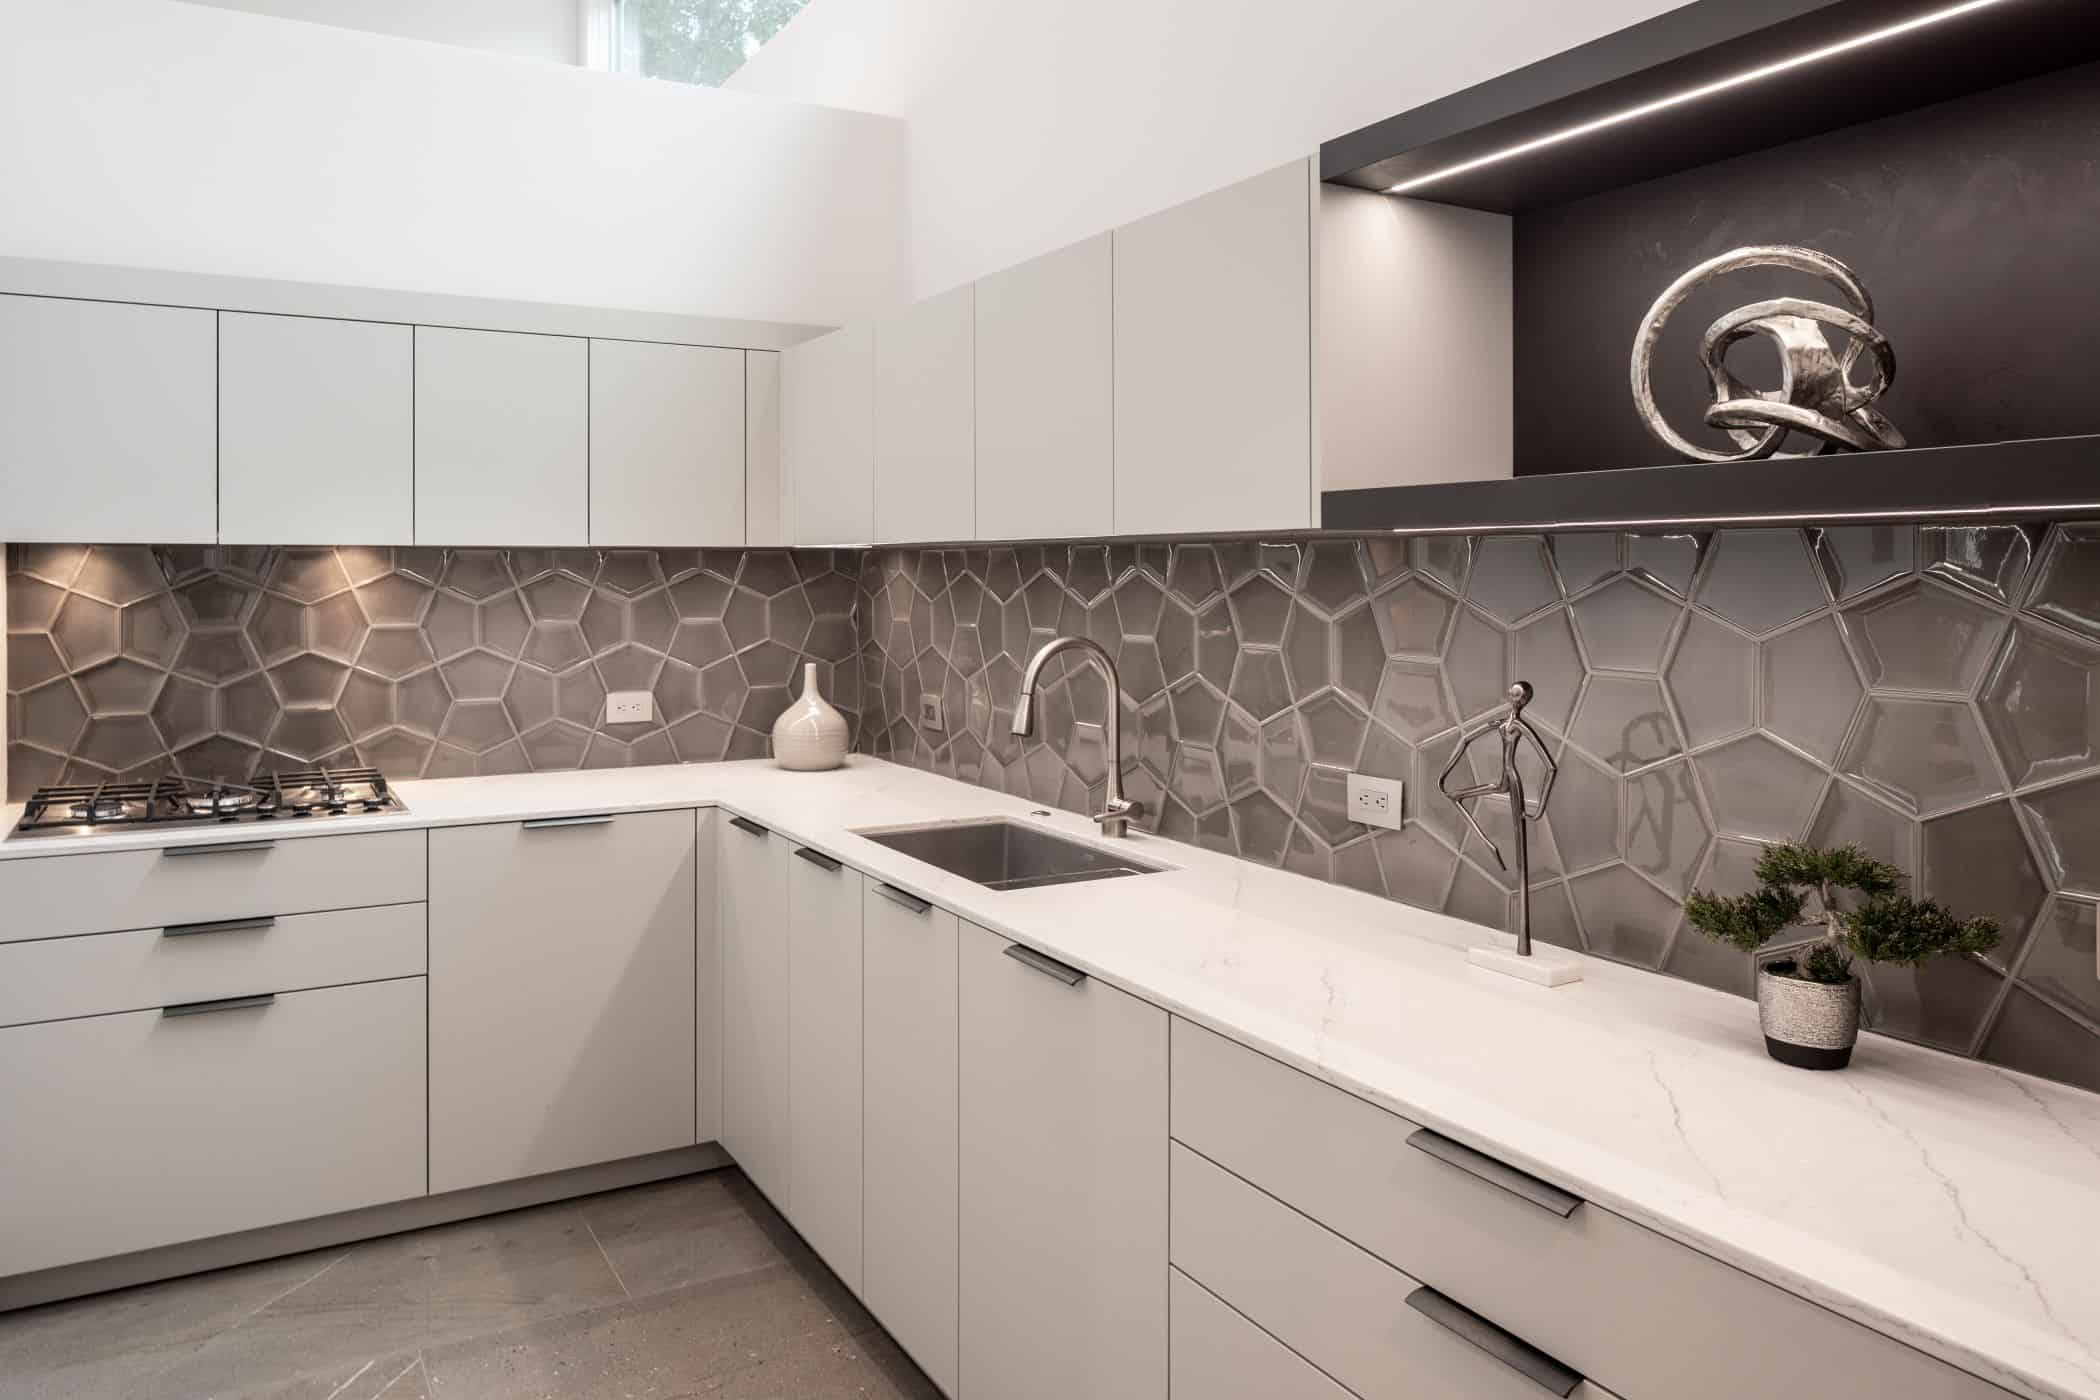 eggersmann german cabinetry and oversized mosaic backsplash in a washington memorial park area home in houston